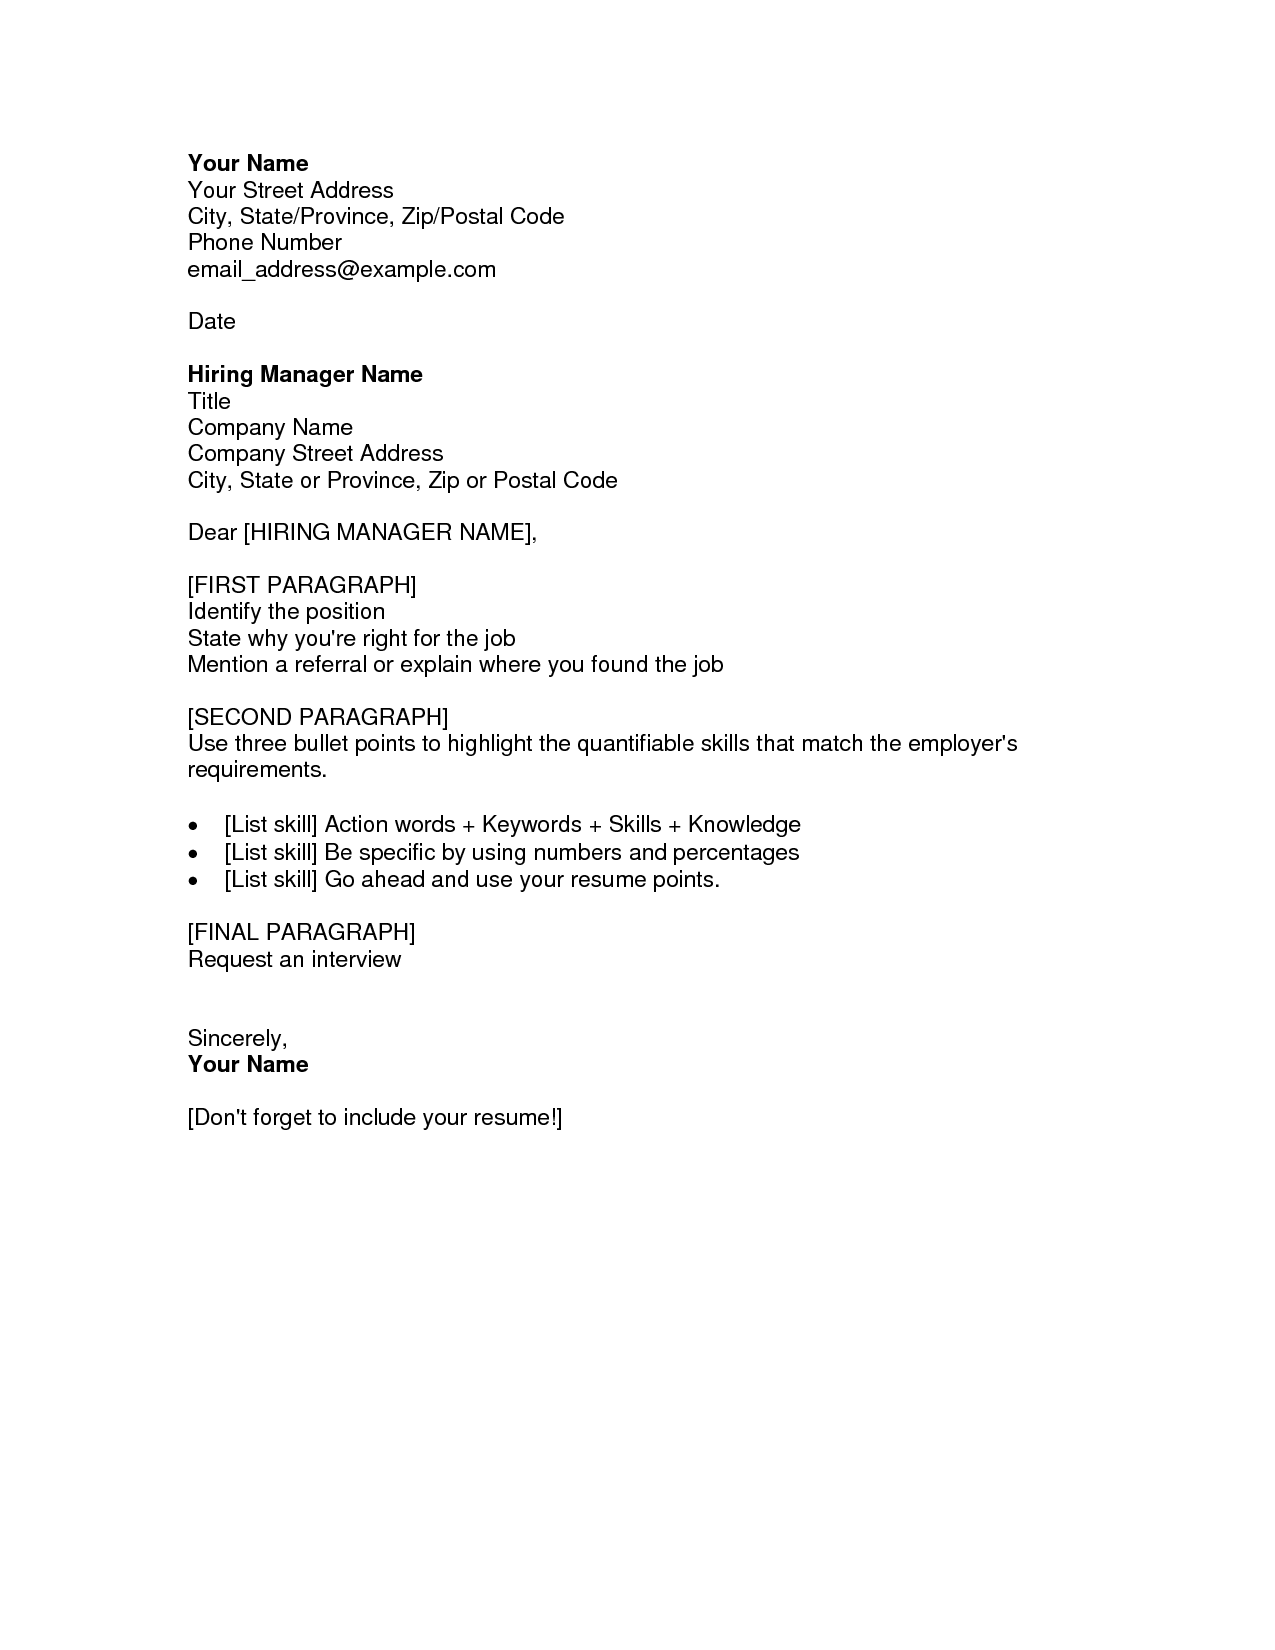 Resume Cover Letter  Fotolip.com Rich image and wallpaper